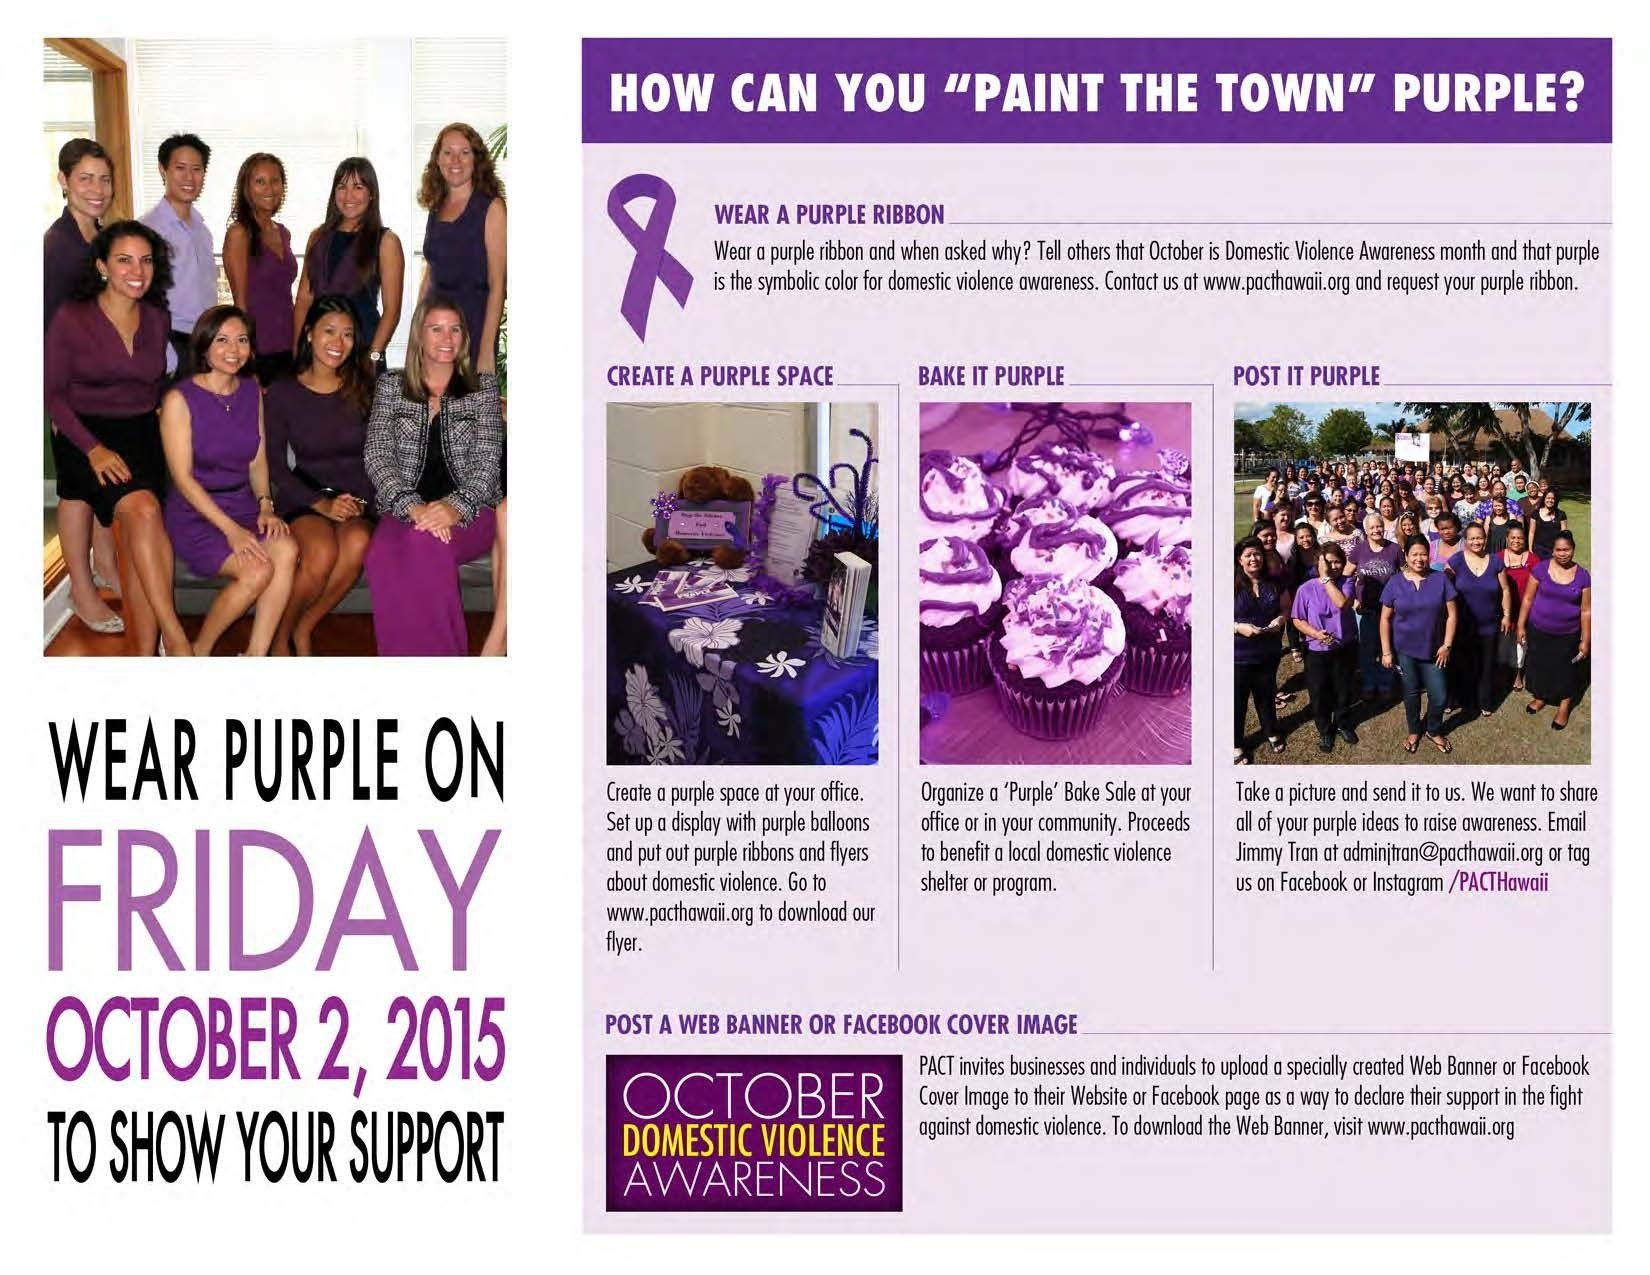 10 Attractive Domestic Violence Awareness Month Ideas paint the town purple for domestic violence awareness month hawai